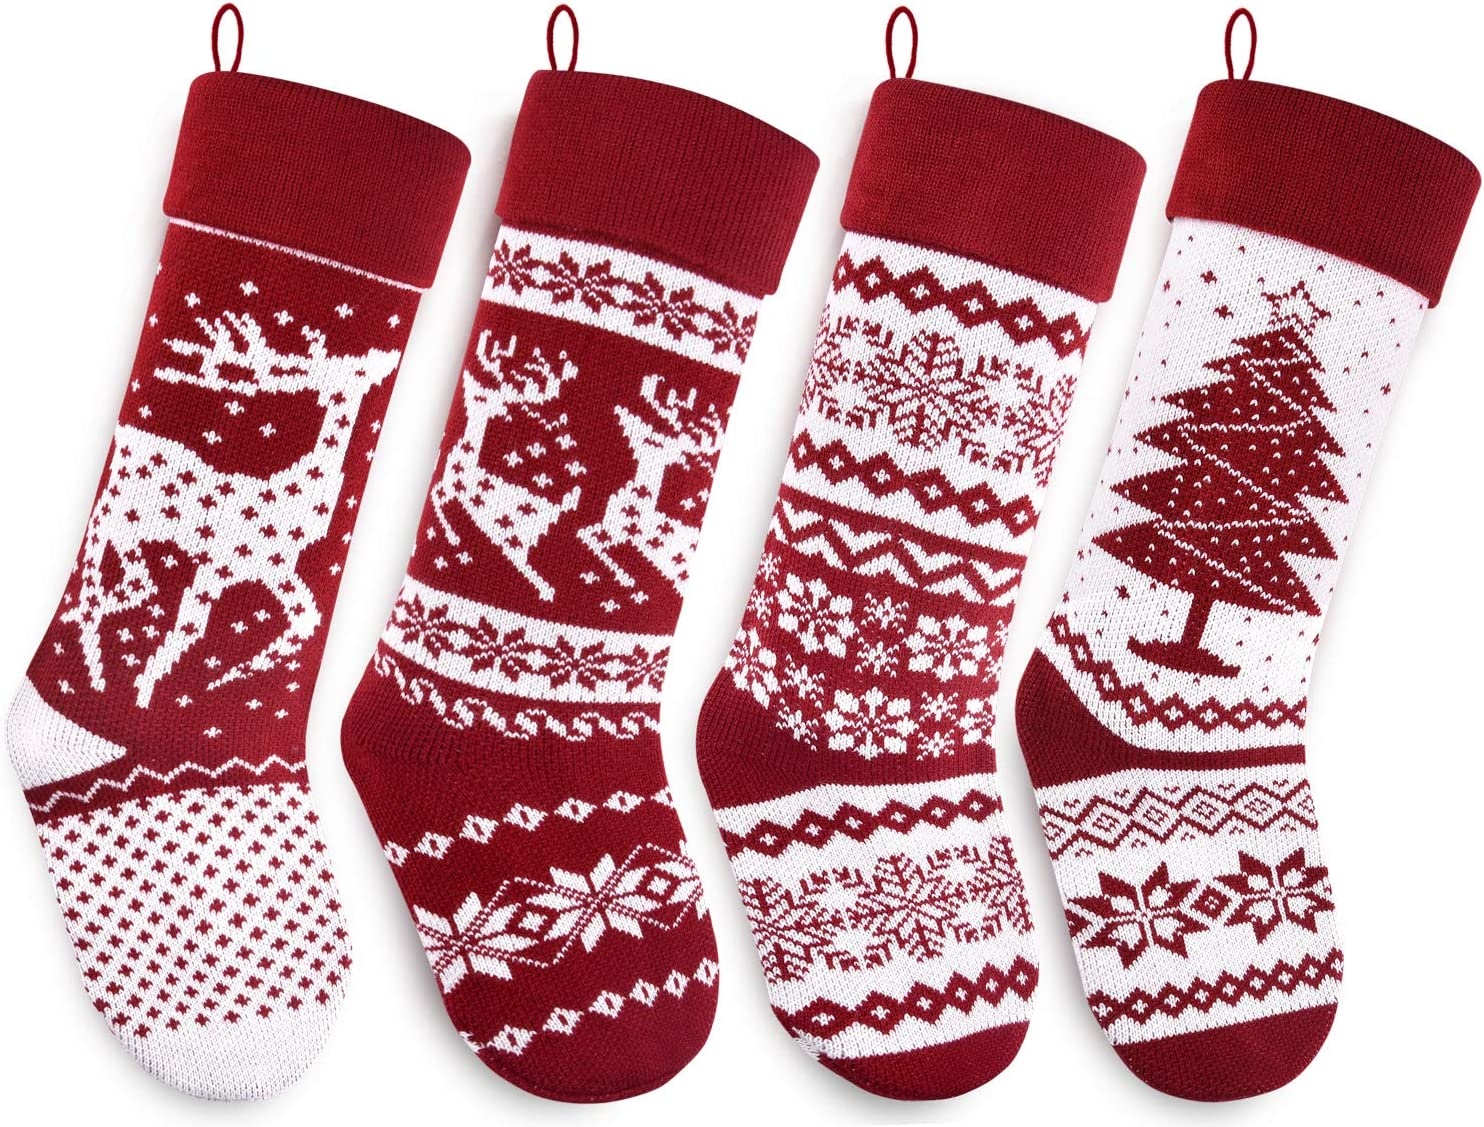 Starry Dynamo Knit Christmas Stockings 21-Inch Long Red/White with Big & Little Reindeer, Snowflakes, Xmas Tree 4-Pack (Big & Little Reindeer, Snowflakes, Xmas Tree)